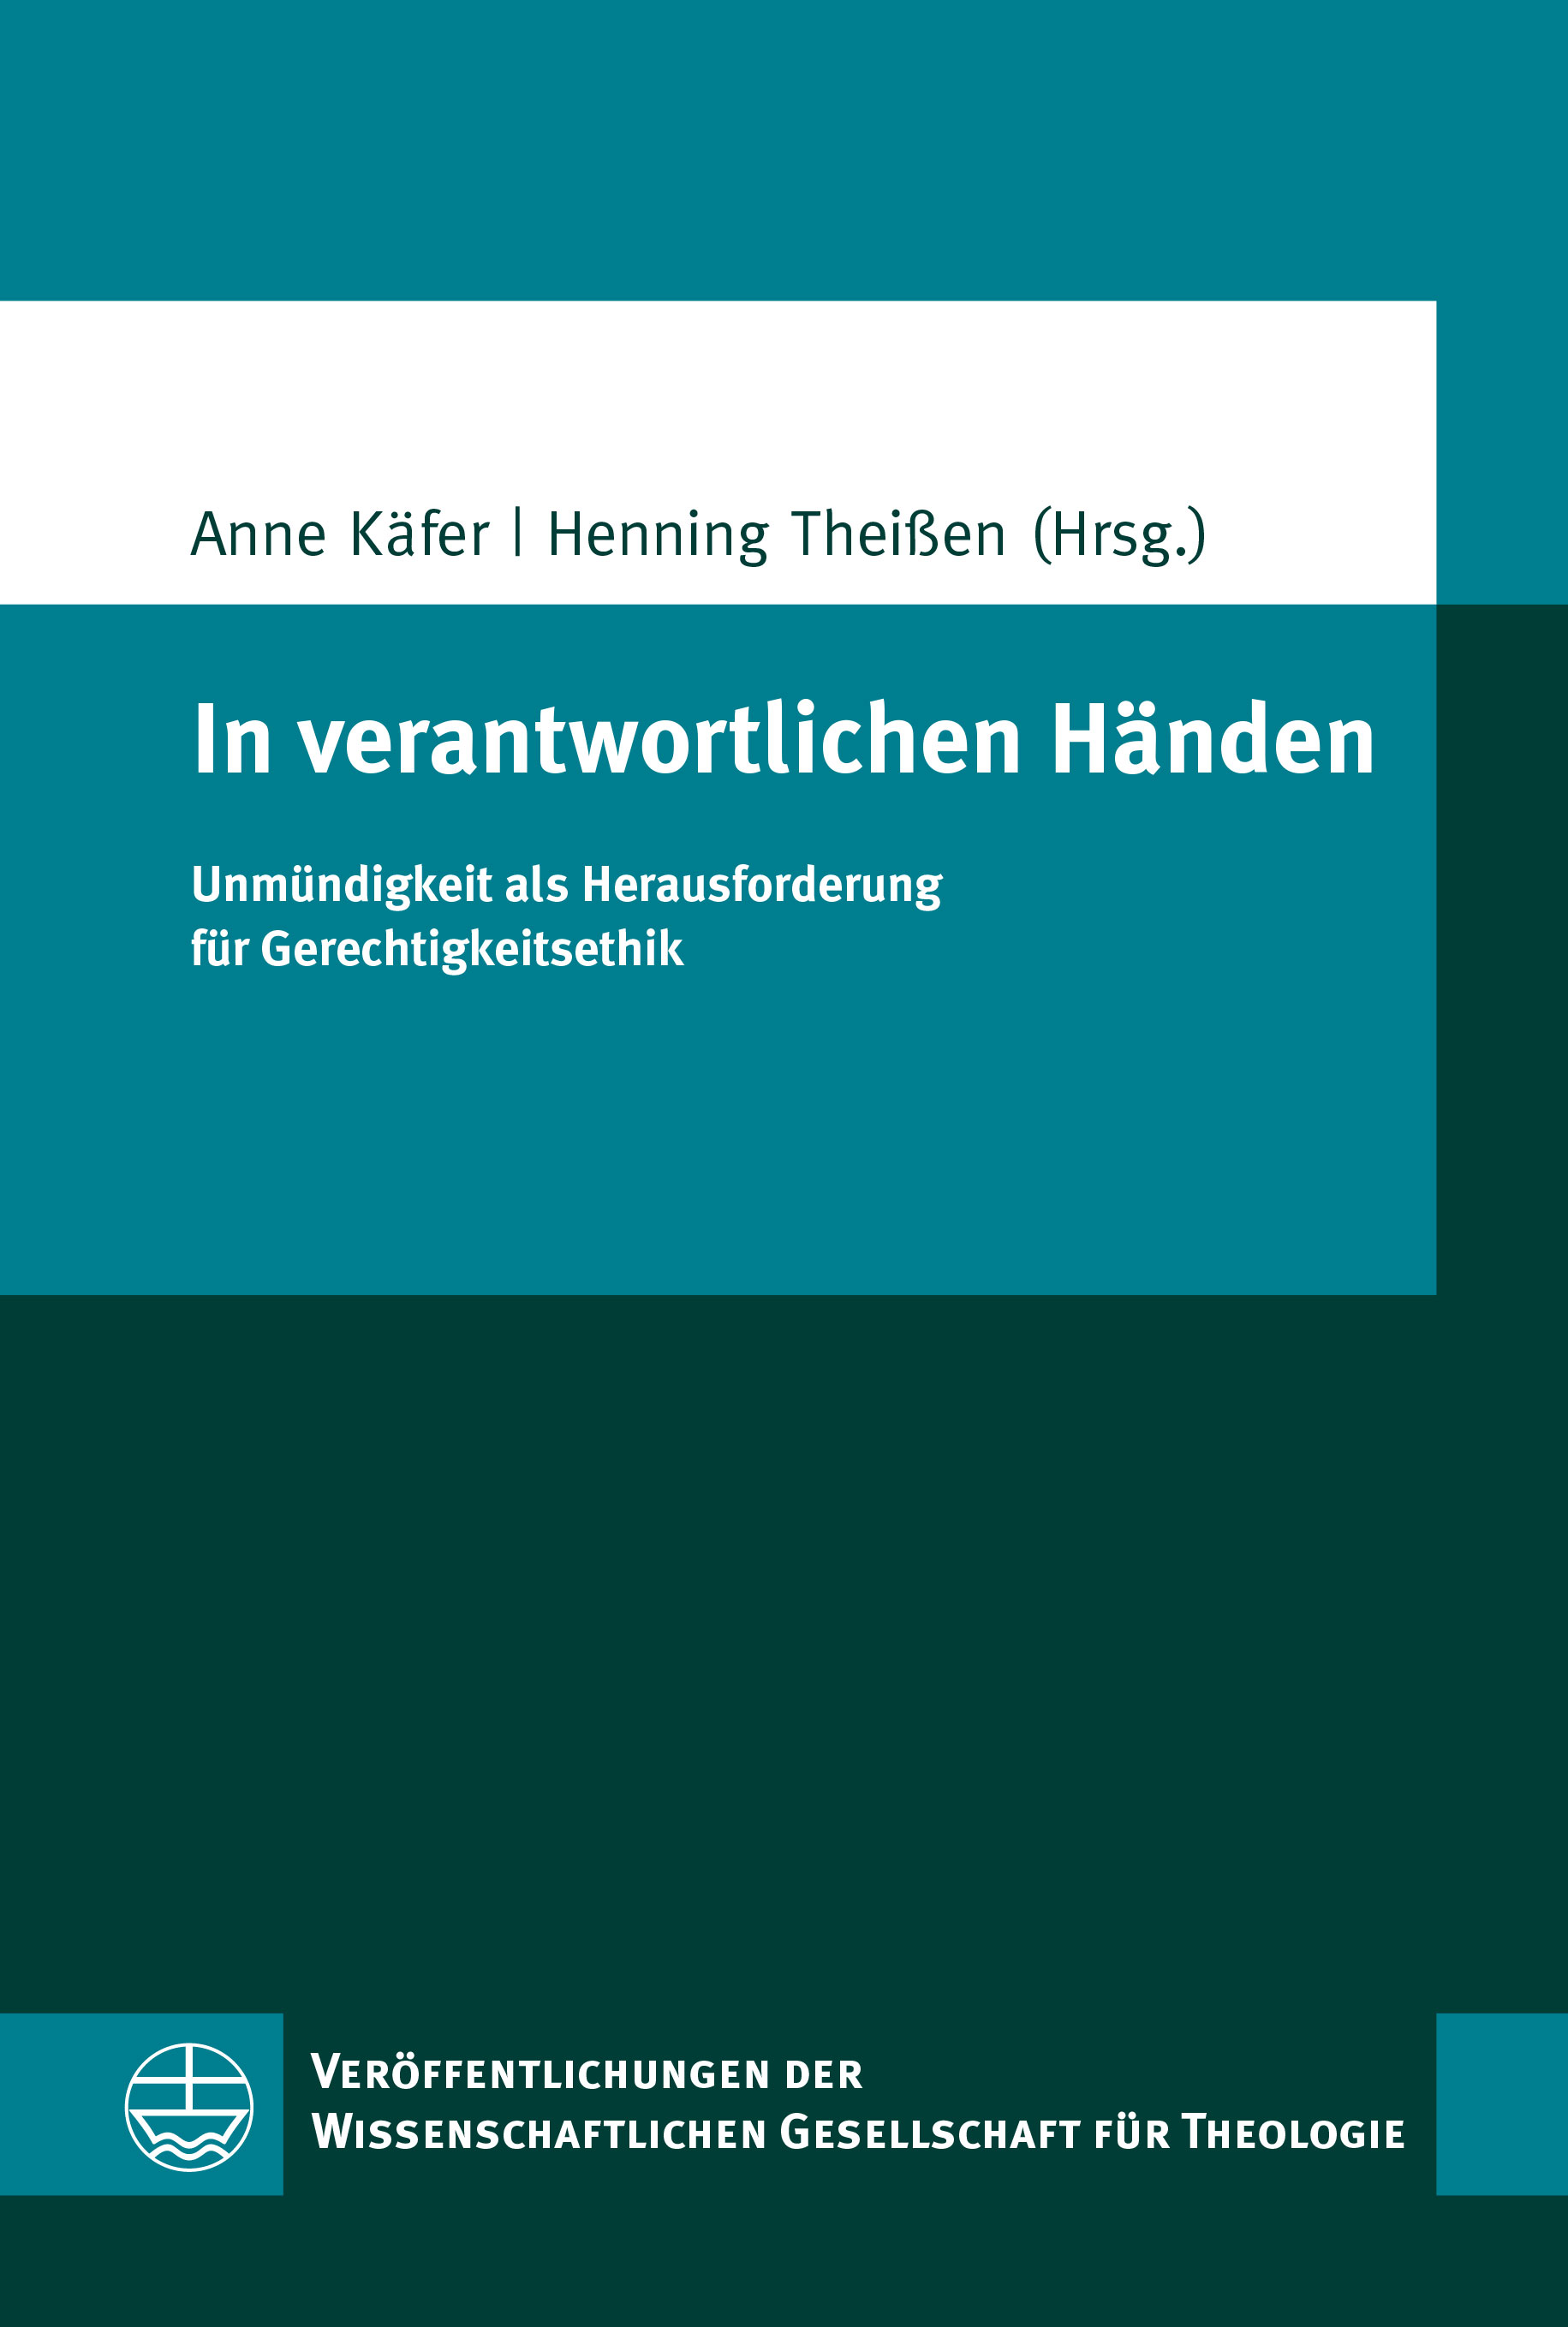 eva cover 05696 VWGTh 55 Kaefer Theien